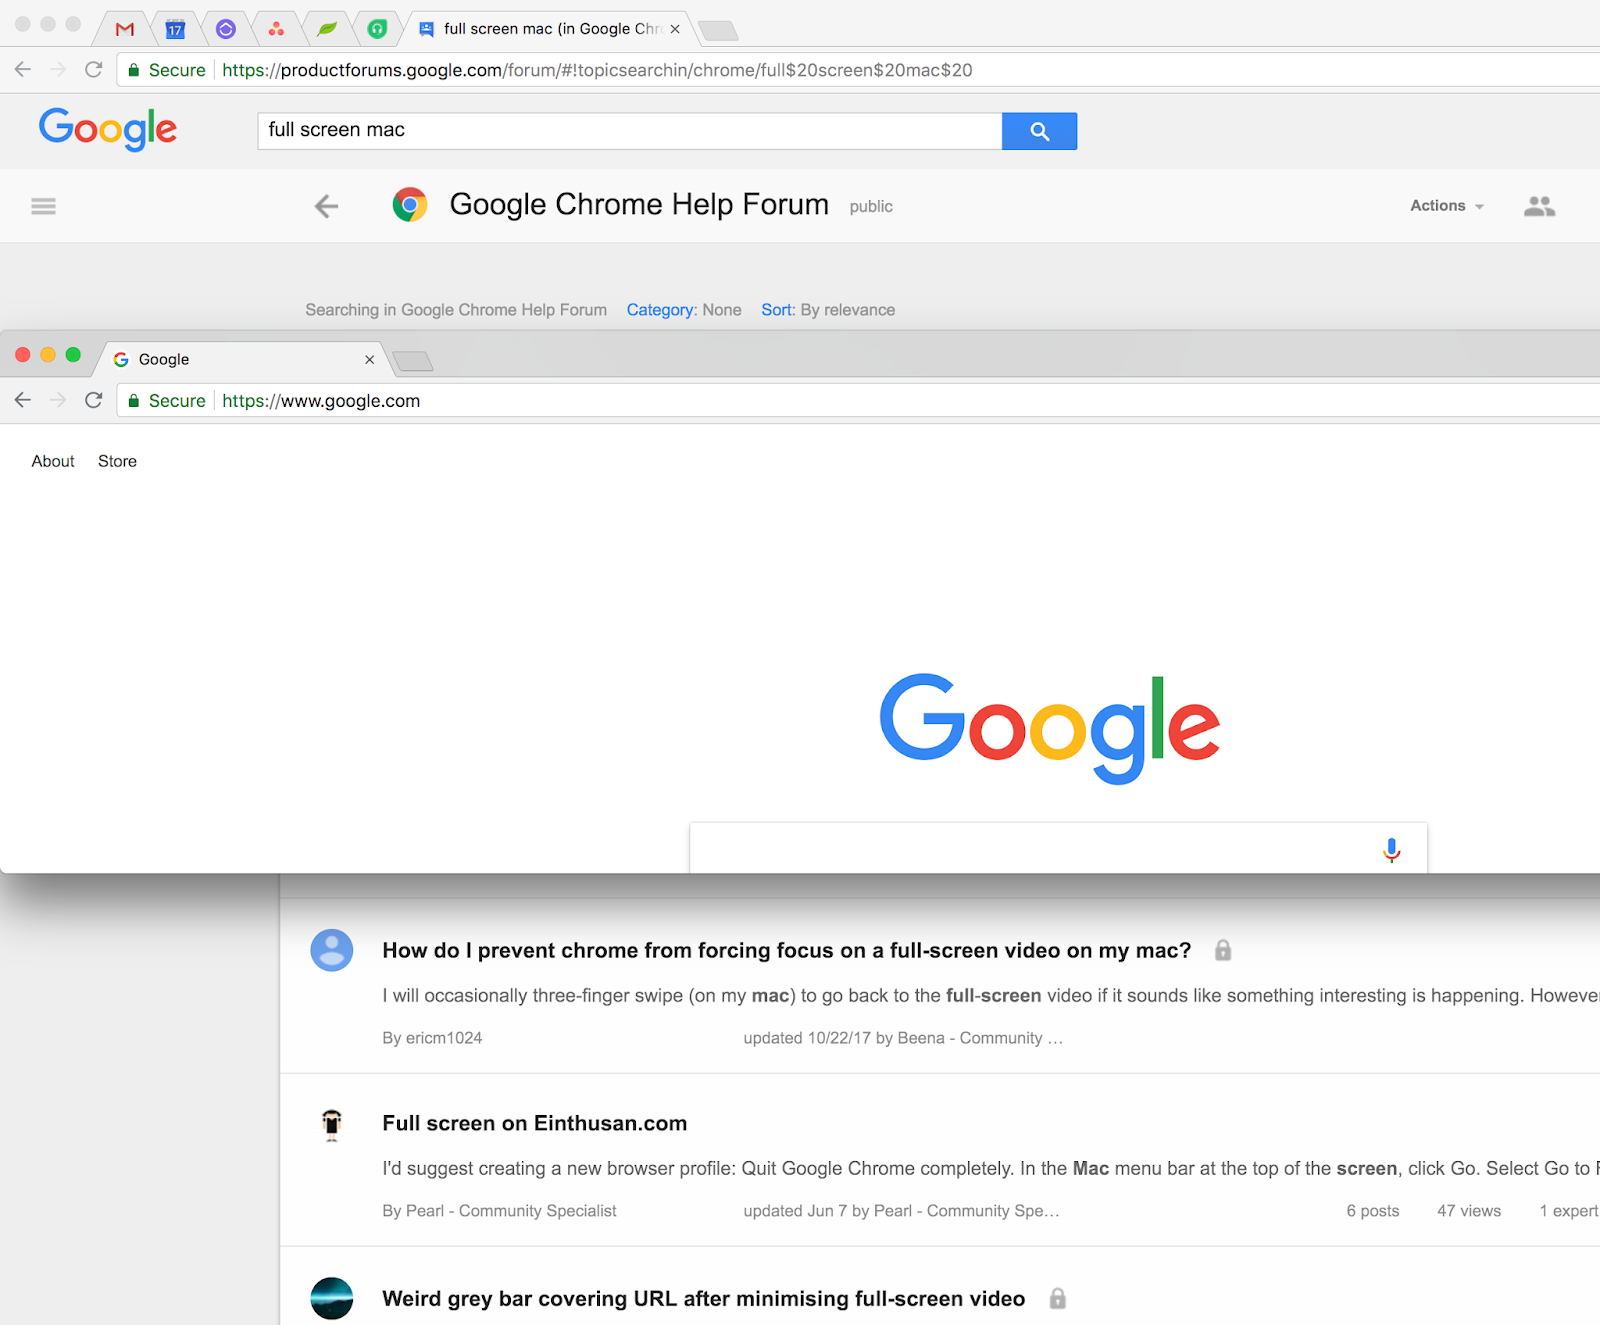 MacOS maximize/full screen new person - Google Chrome Help